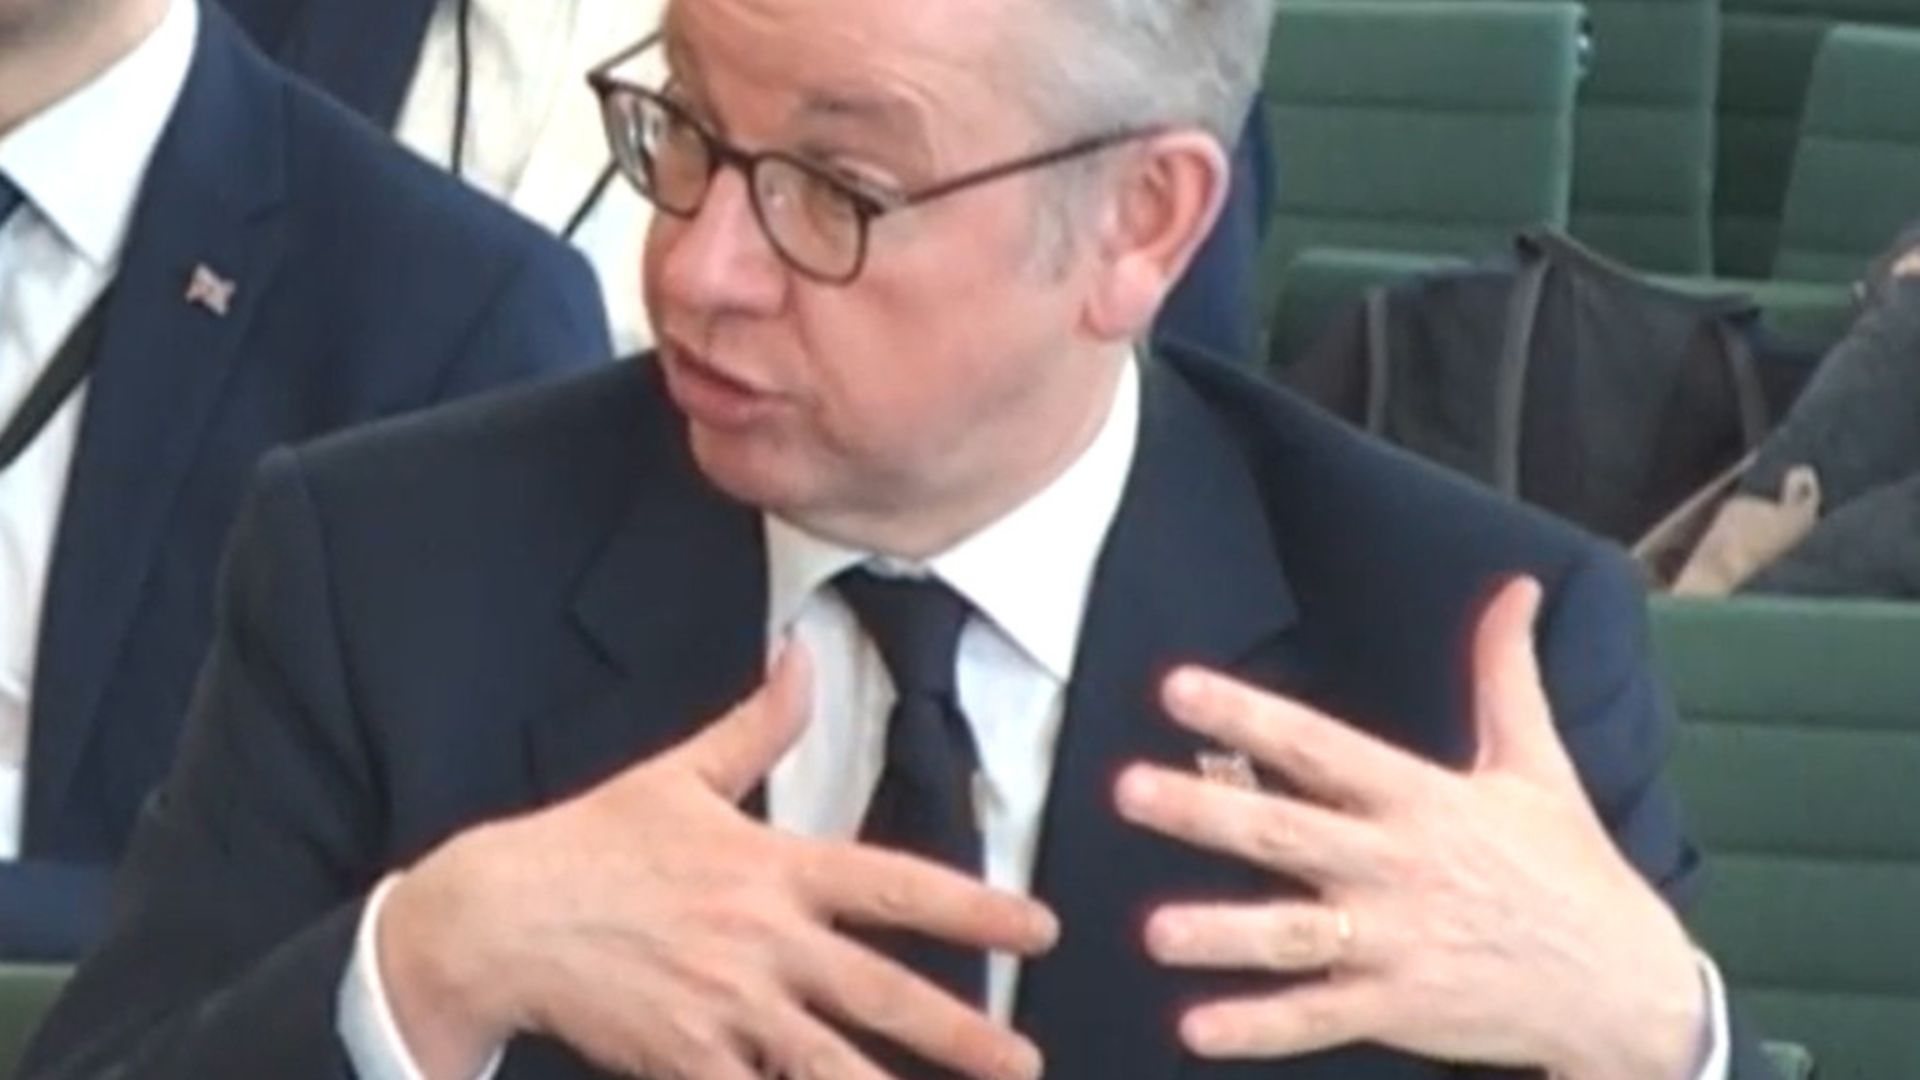 Chancellor of the Duchy of Lancaster Michael Gove giving evidence to MPs at the Select Committee on the Future Relationship with the European Union. Photograph: Parliament TV. - Credit: PA